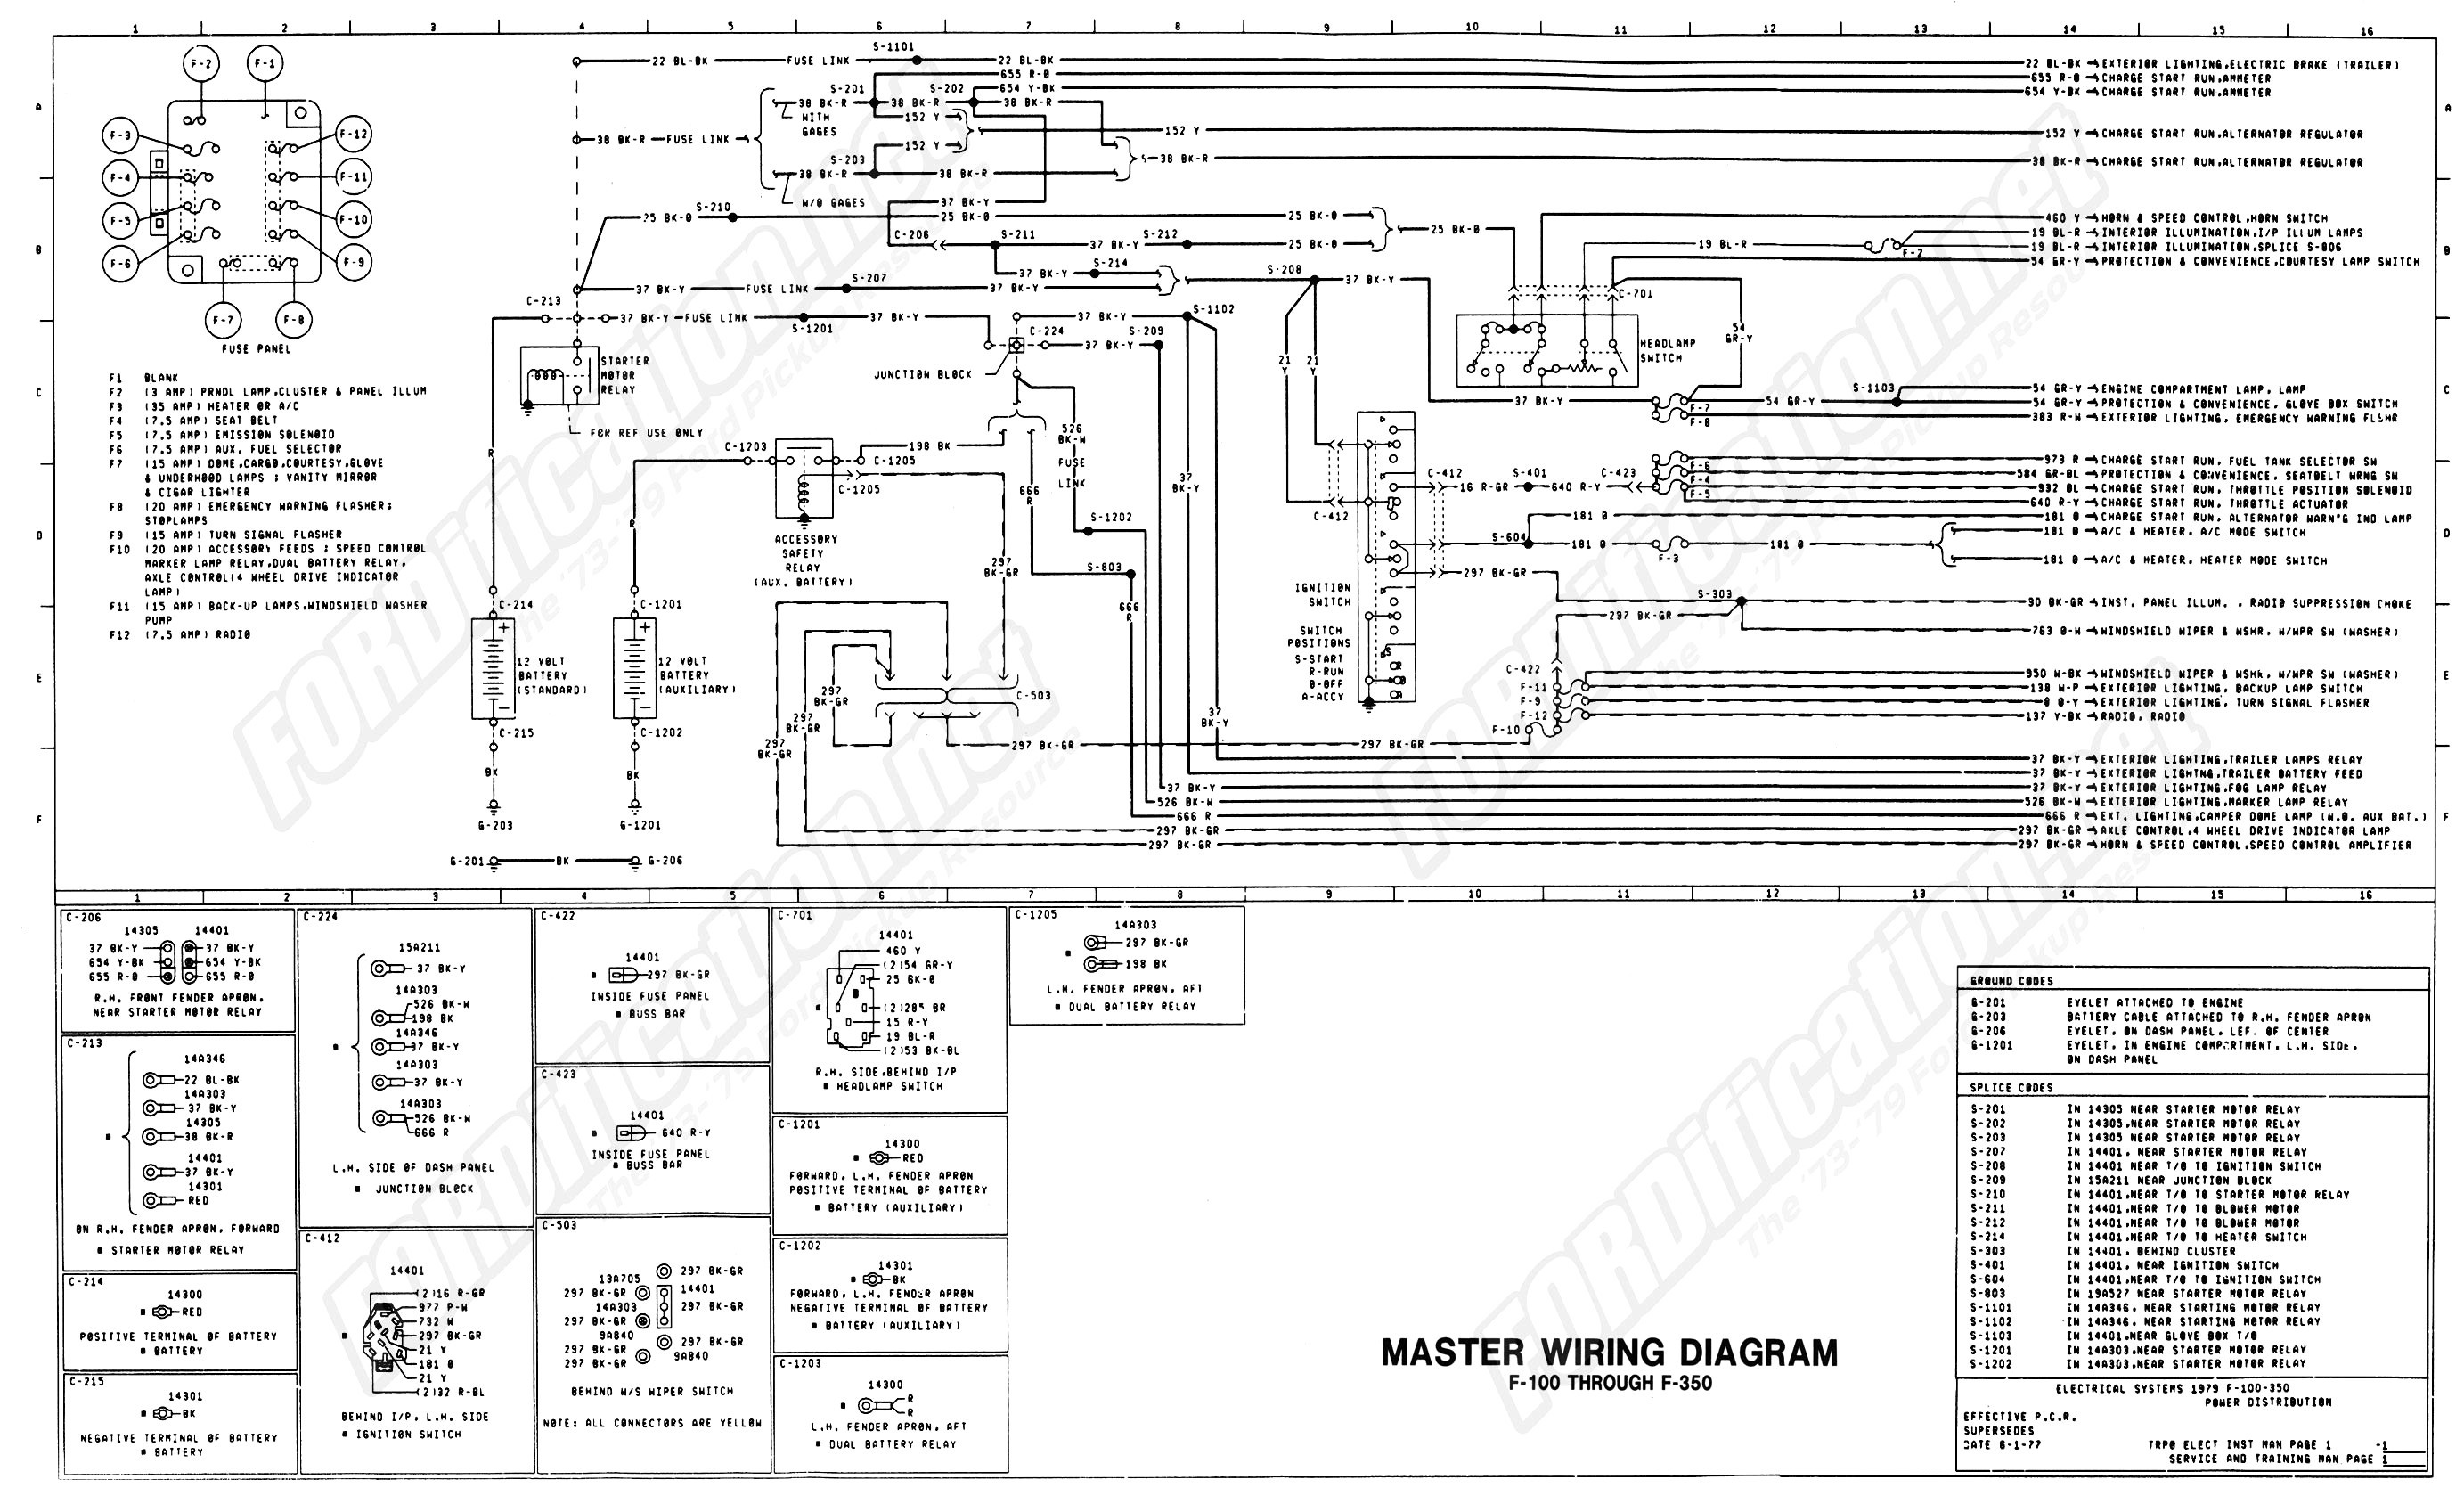 1995 international wiring diagram model 1ht detailed schematics rh jvpacks  com international wiring diagram for trailers international wire transfer  diagram